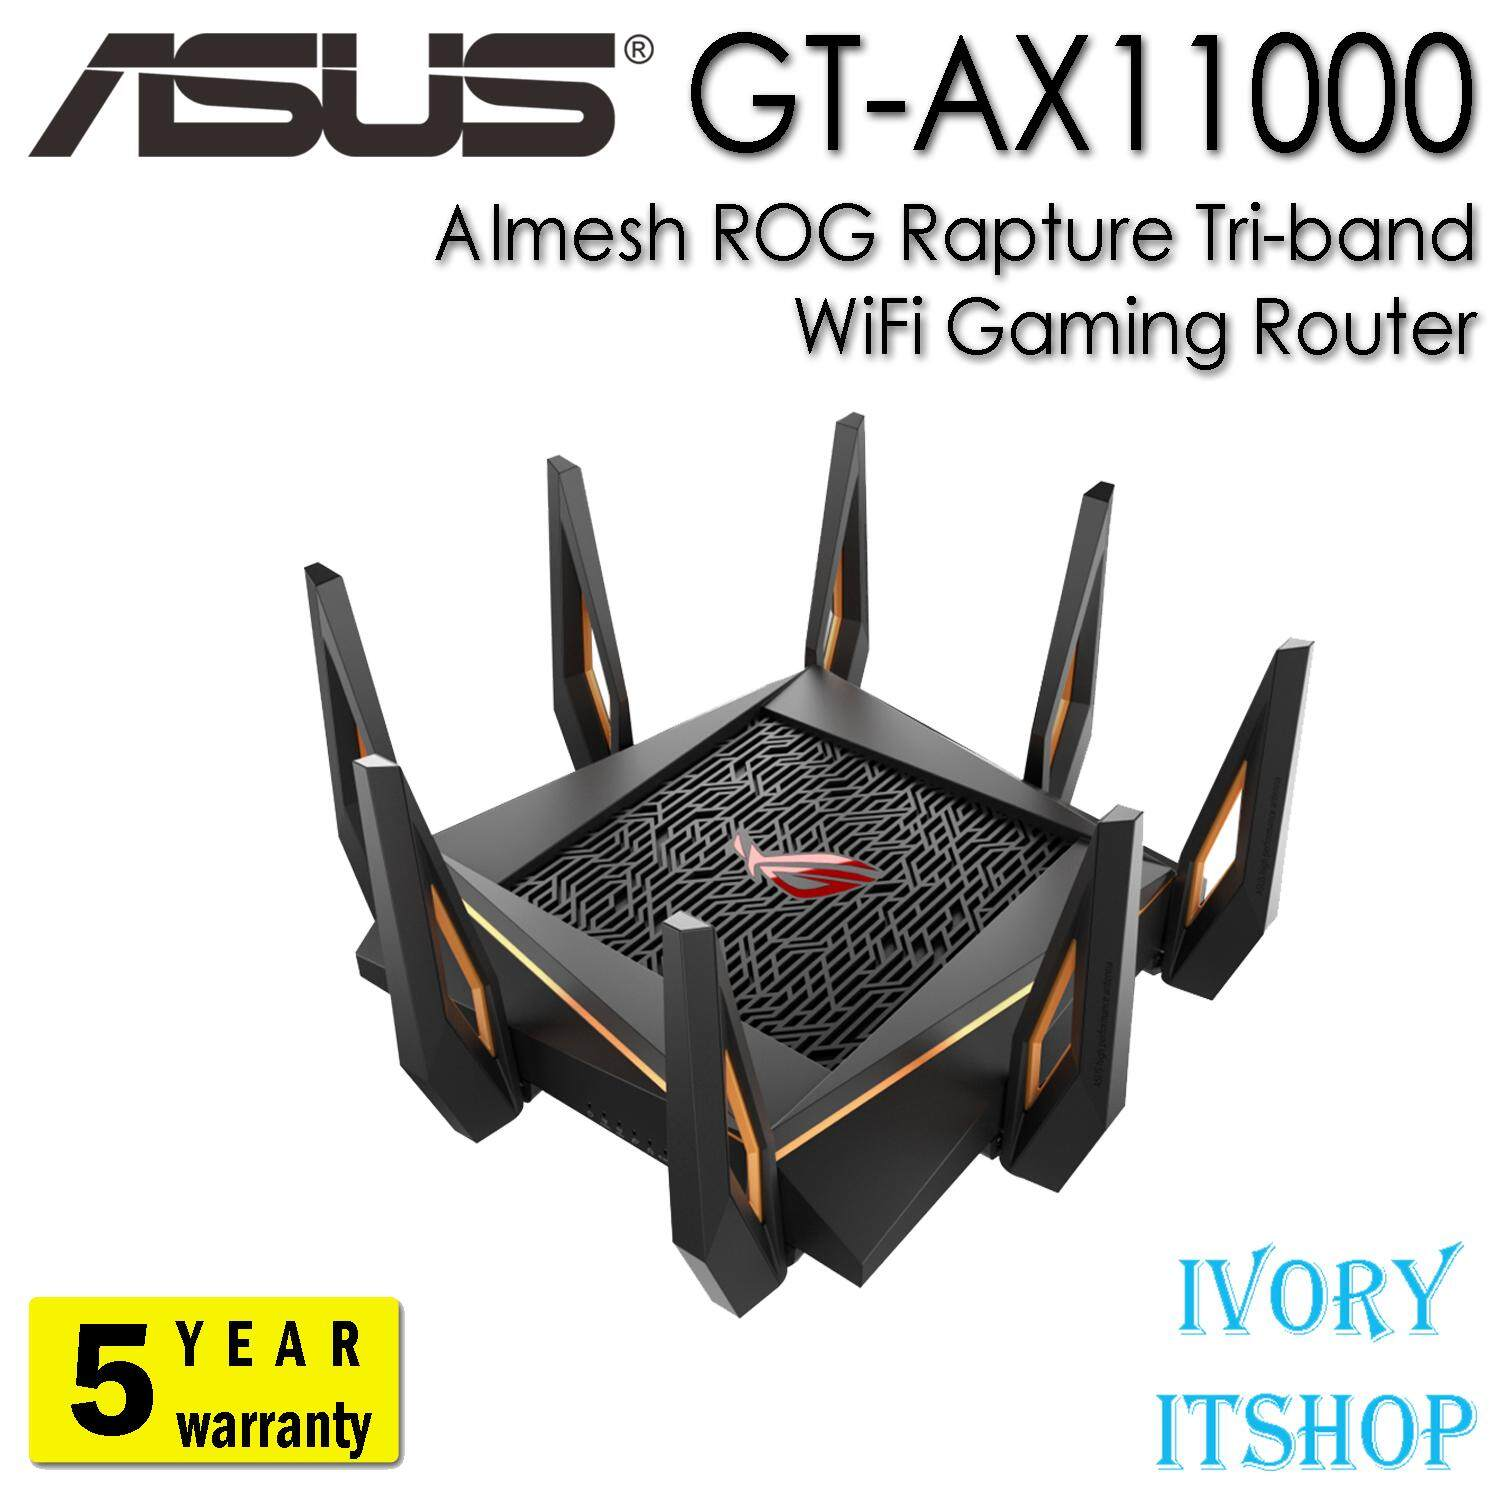 Asus Gt-Ax11000 Aimesh Rog Rapture Tri-Band Wifi Ax11000 Gaming Router/ivoryitshop.